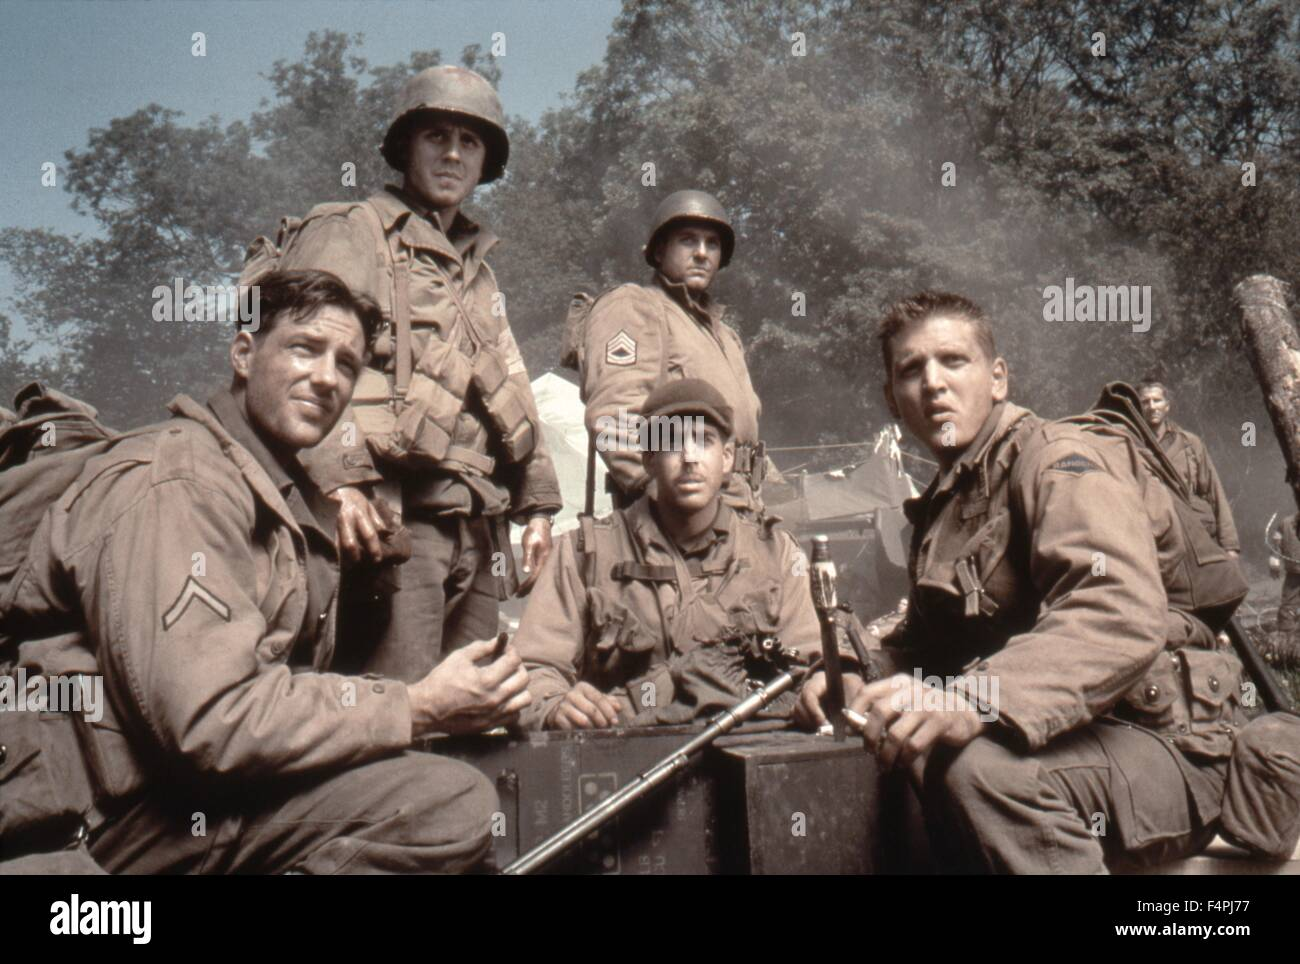 Edward Burns, Giovanni Ribisi, Tom Sizemore, Adam Golberg and Barry Pepper / Saving Private Ryan / 1998 directed - Stock Image